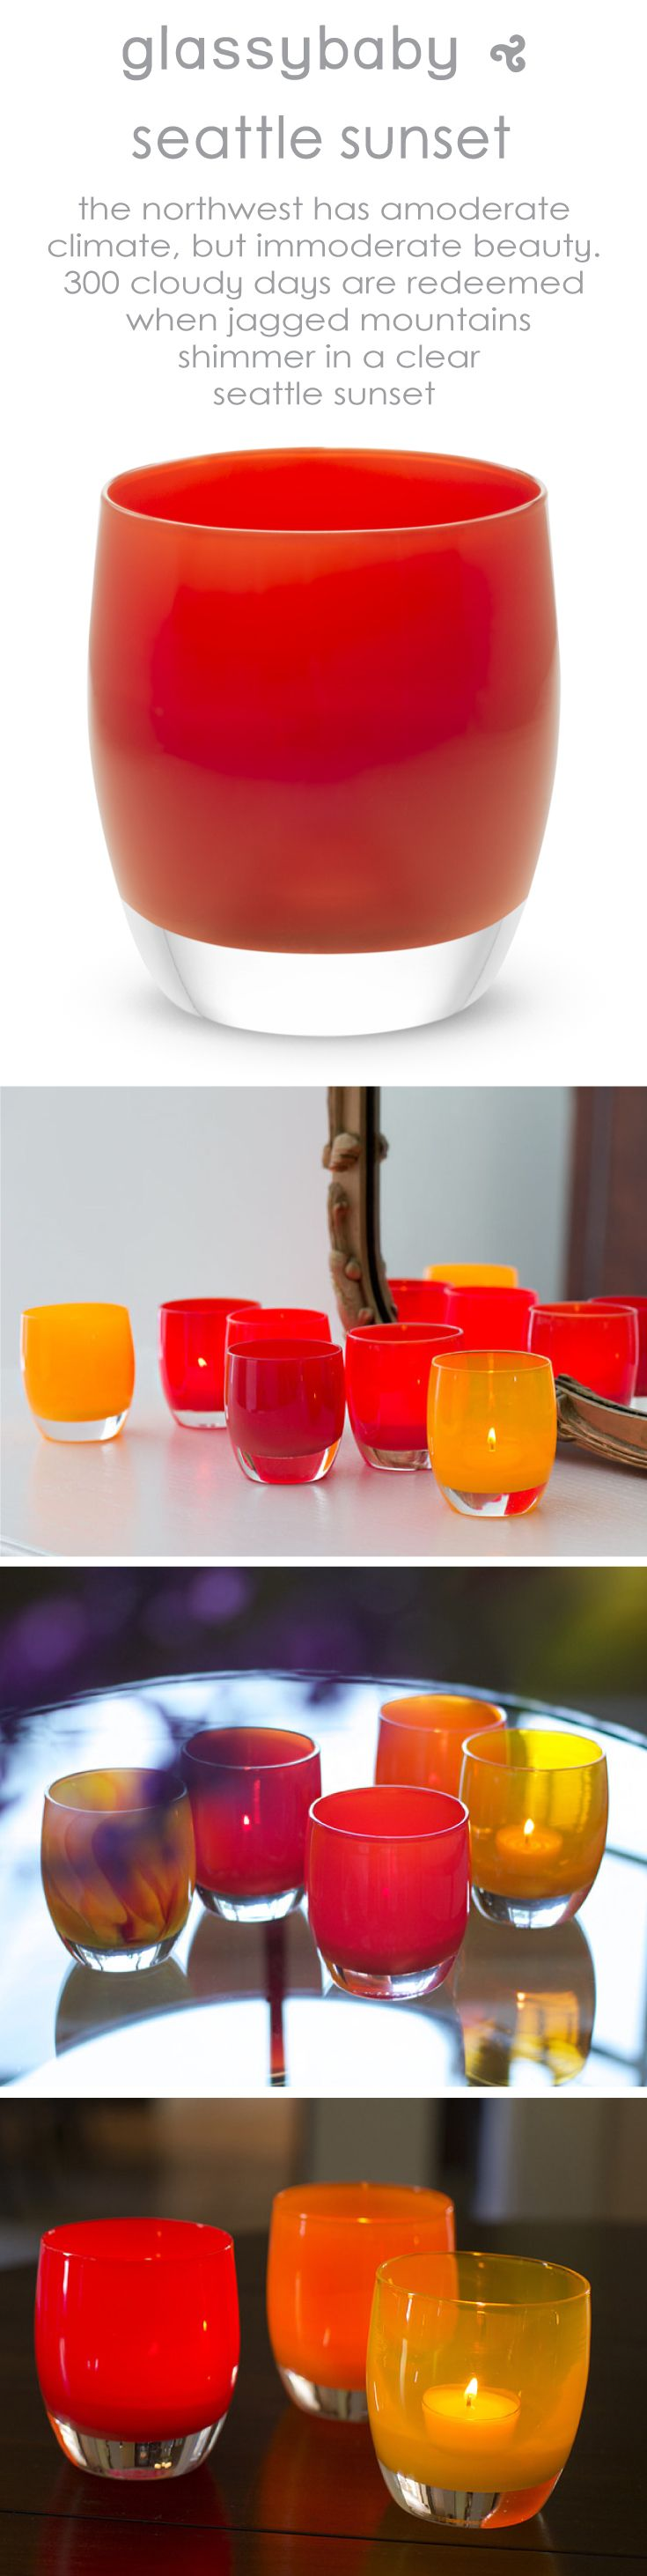 the northwest has a moderate climate, but immoderate beauty. 300 cloudy days are redeemed when jagged mountains shimmer in a clear seattle sunset.  10% of the sale of each 'seattle sunset' will be donated to the glassybaby white light fund in further support of seattle arts & lectures and their writers in the schools program.